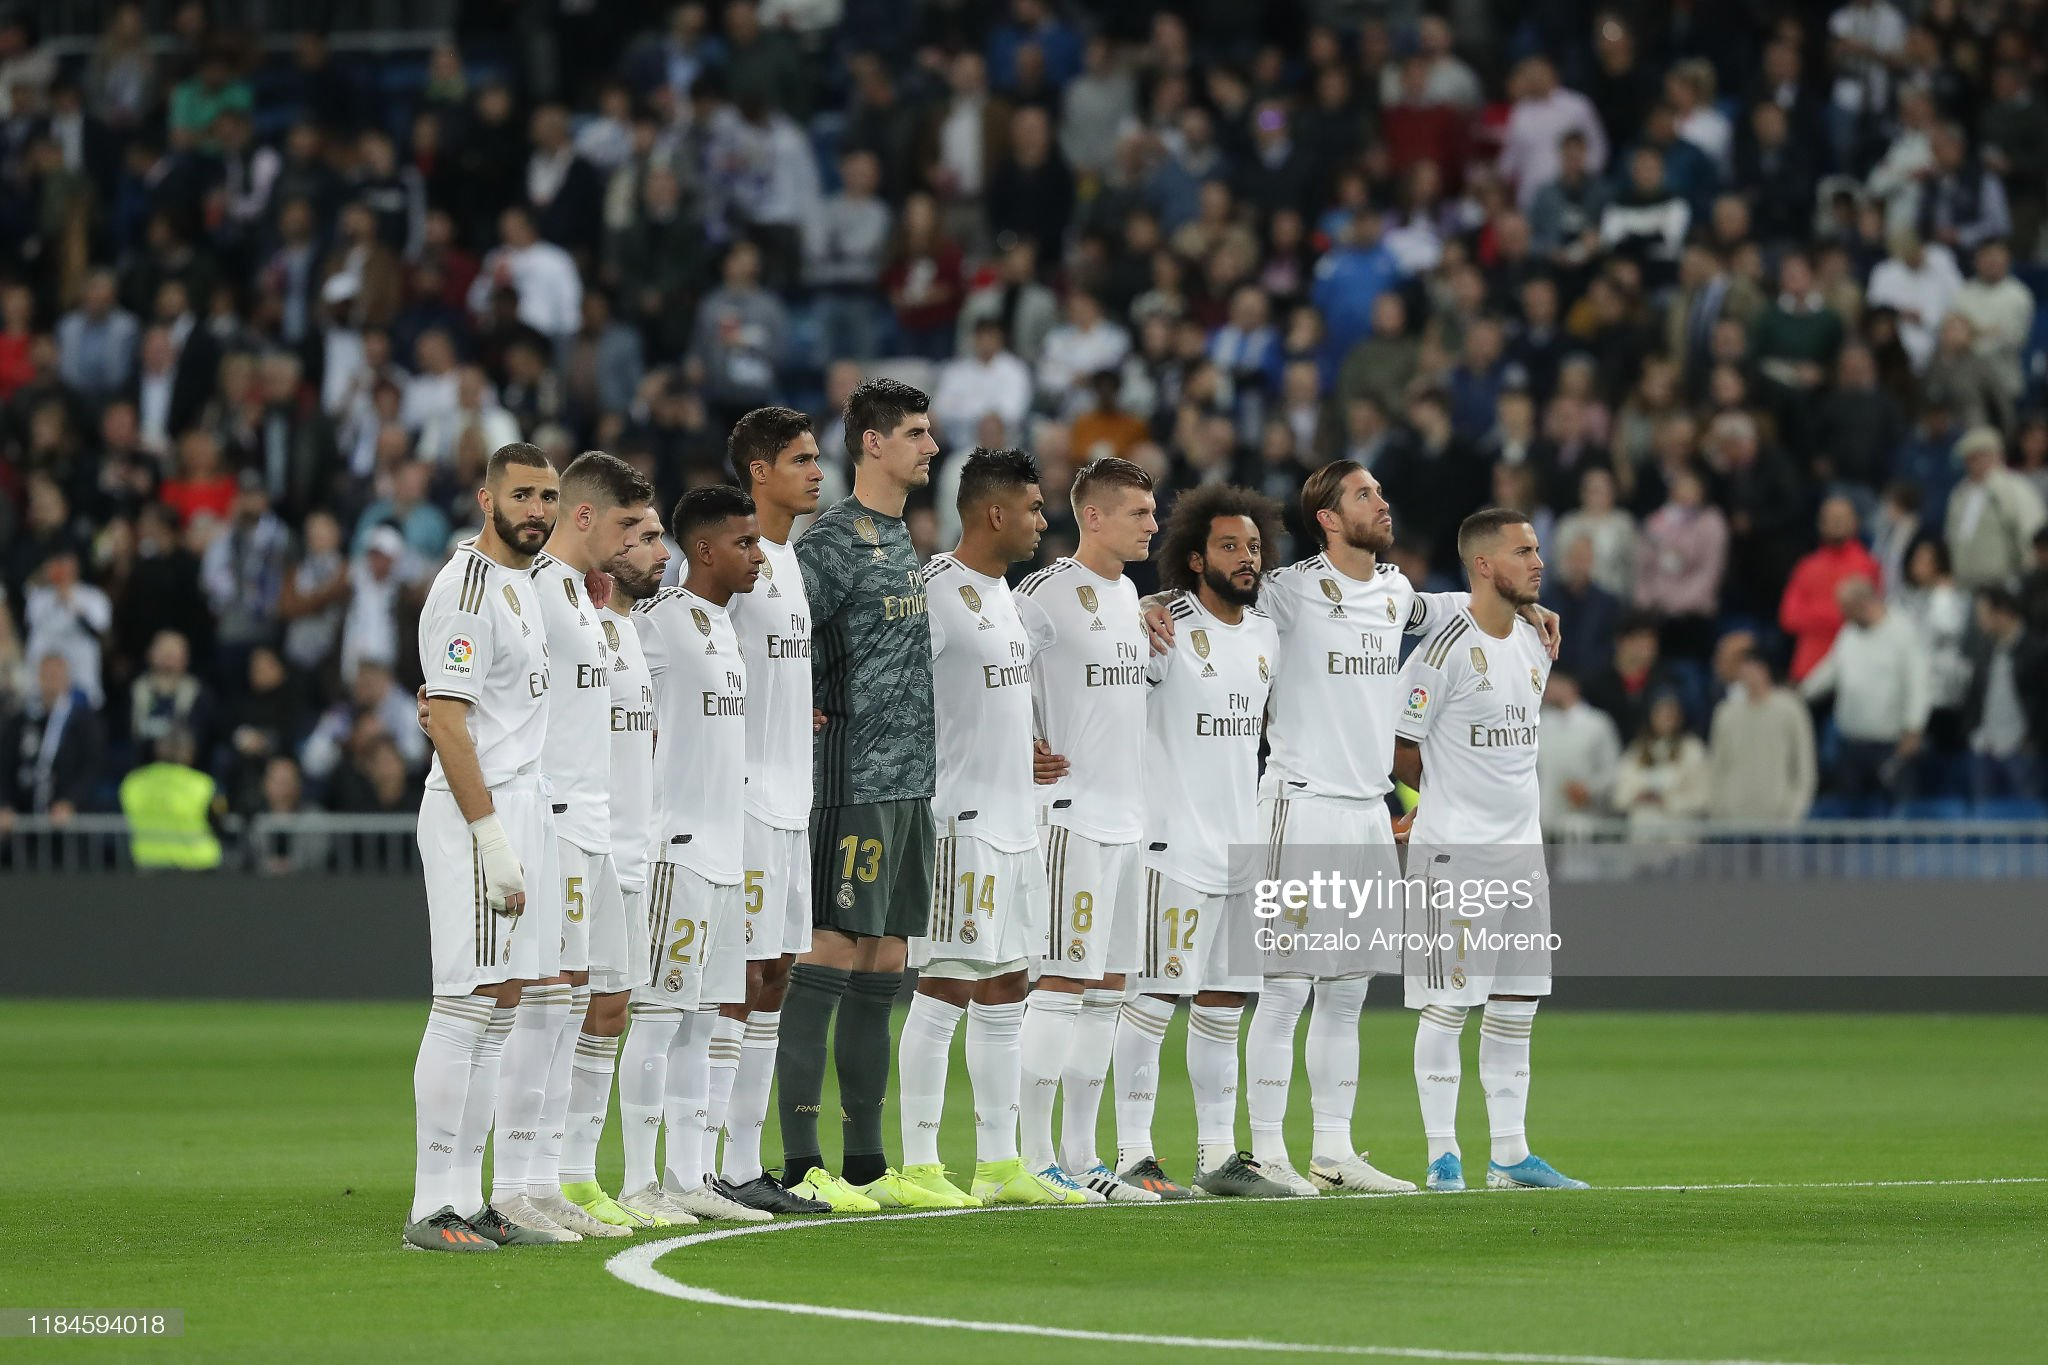 Hilo del Real Madrid - Página 3 Real-madrid-players-observe-one-minute-of-silence-in-honor-of-ex-real-picture-id1184594018?s=2048x2048